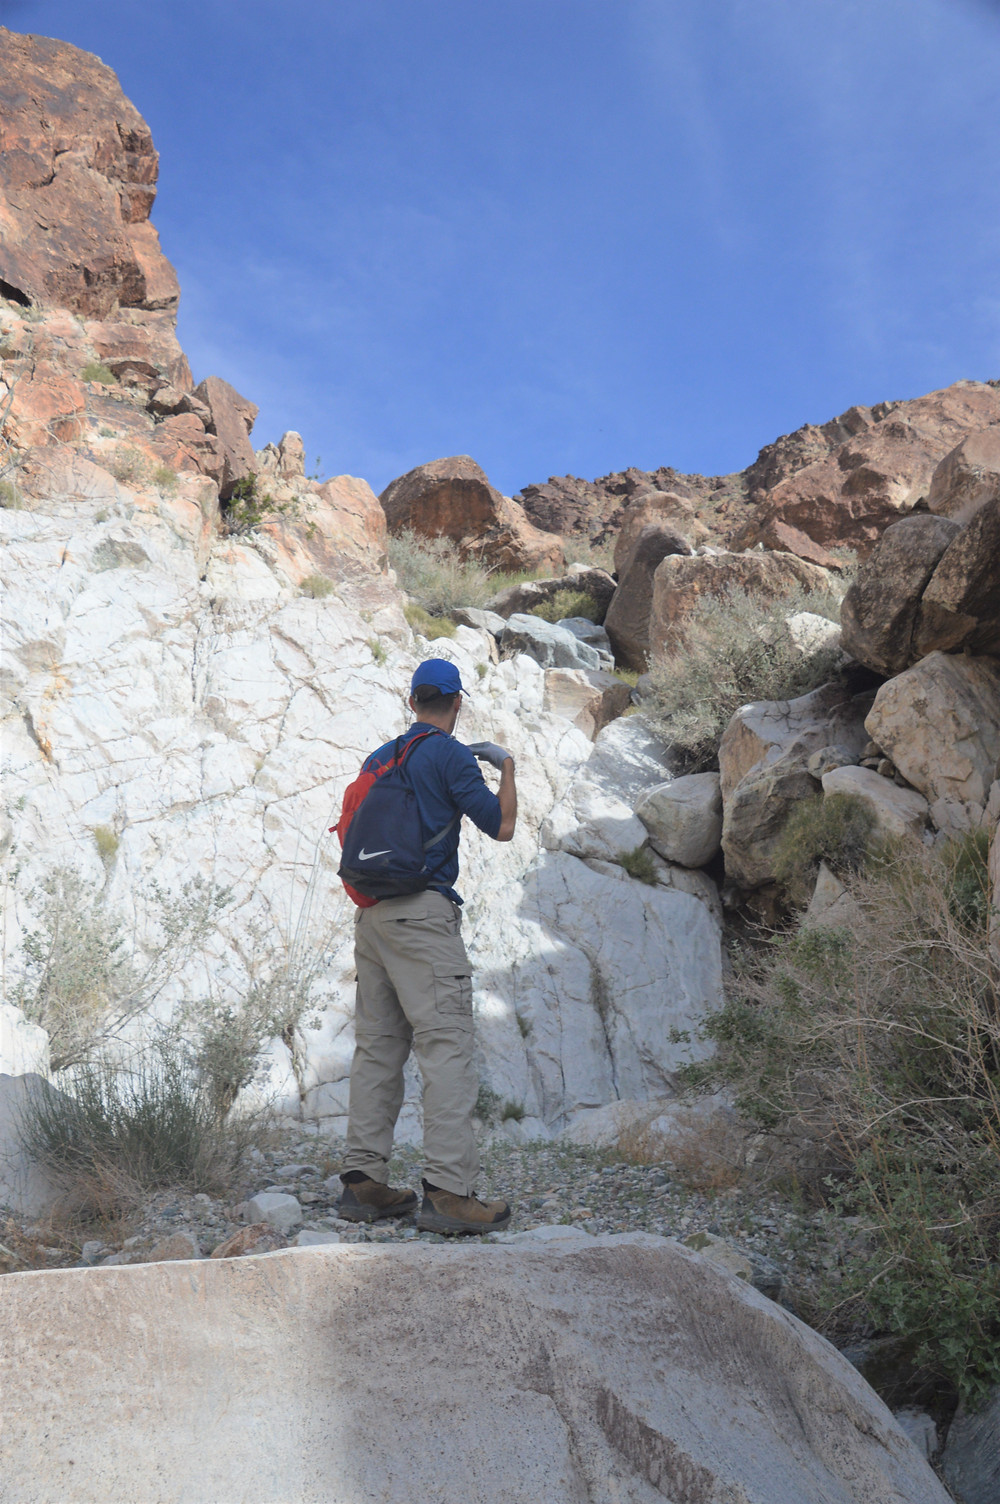 Vertical rock wall on hike leading to summit of Pinto Mountain in Joshua Tree National Park